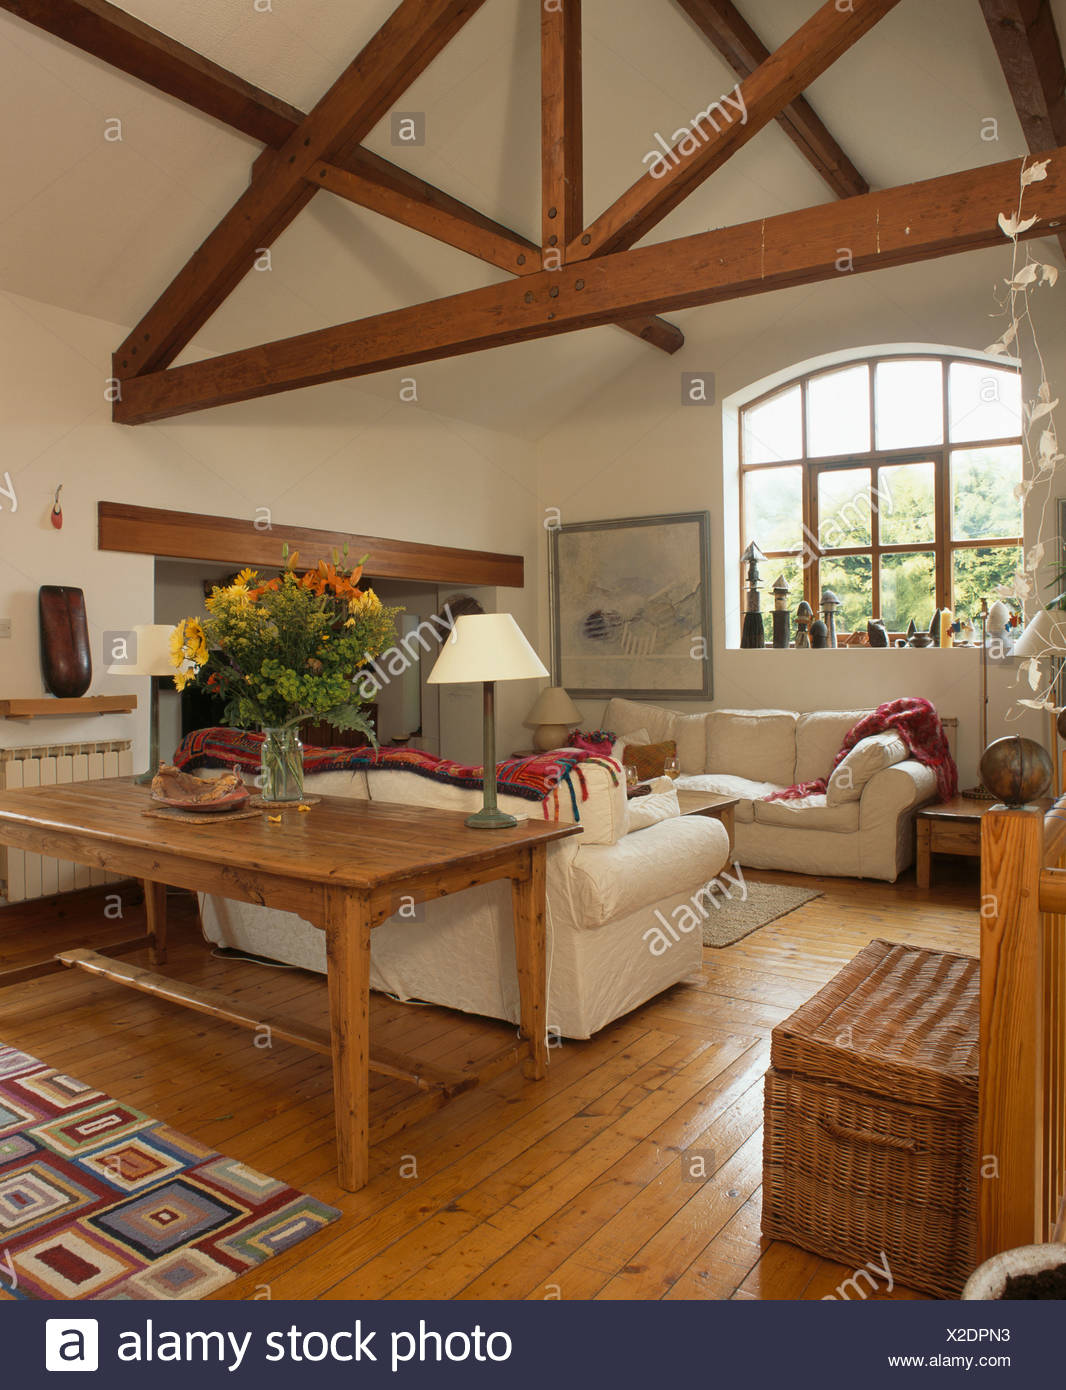 Reclaimed Wood Table And Pine Flooring With White Sofas In Living Room With  Wooden Beams On Apex Ceiling